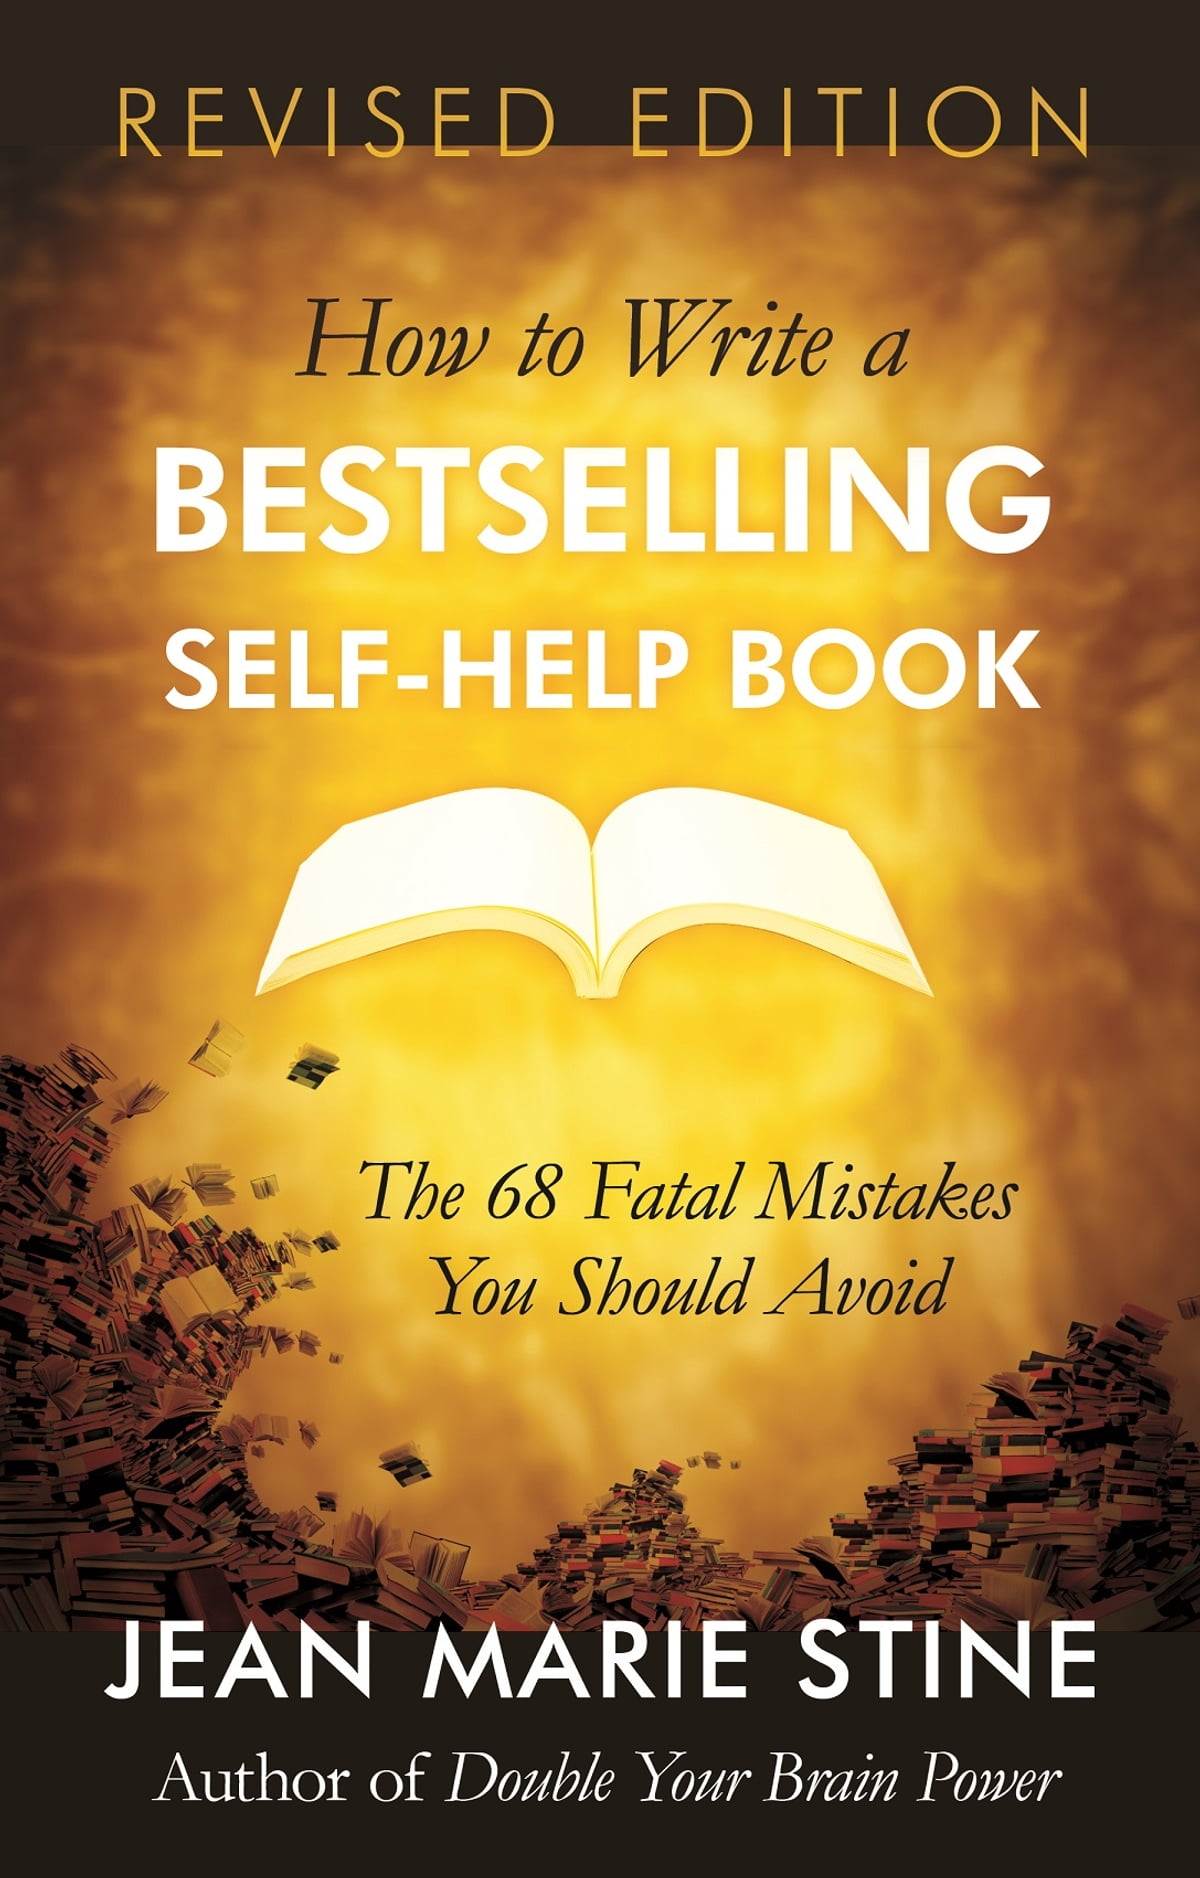 how to write a bestselling self-help book ebook by jean marie stine